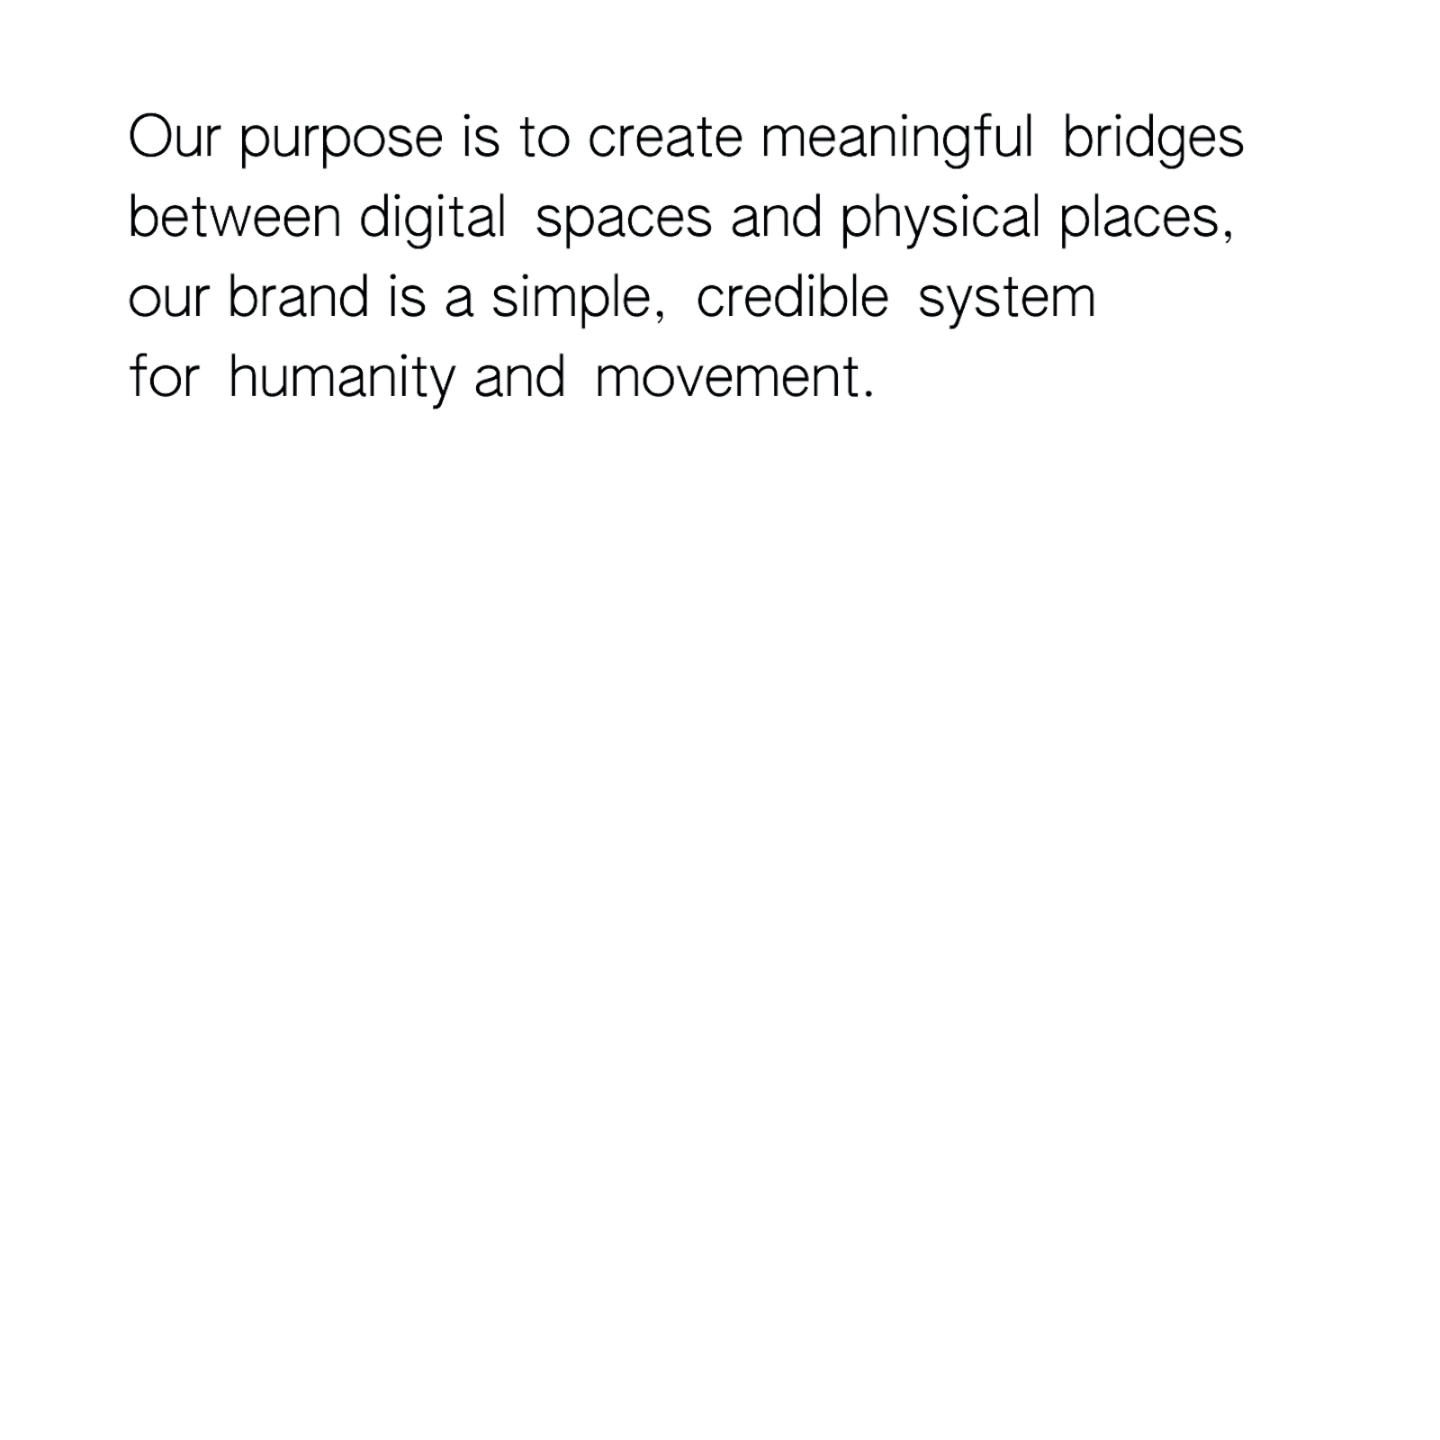 """Text on a white background that says """"Our purpose is to create meaningful bridges between digital spaces and physical places, our brand is a simple, credible system for humanity and movement."""""""